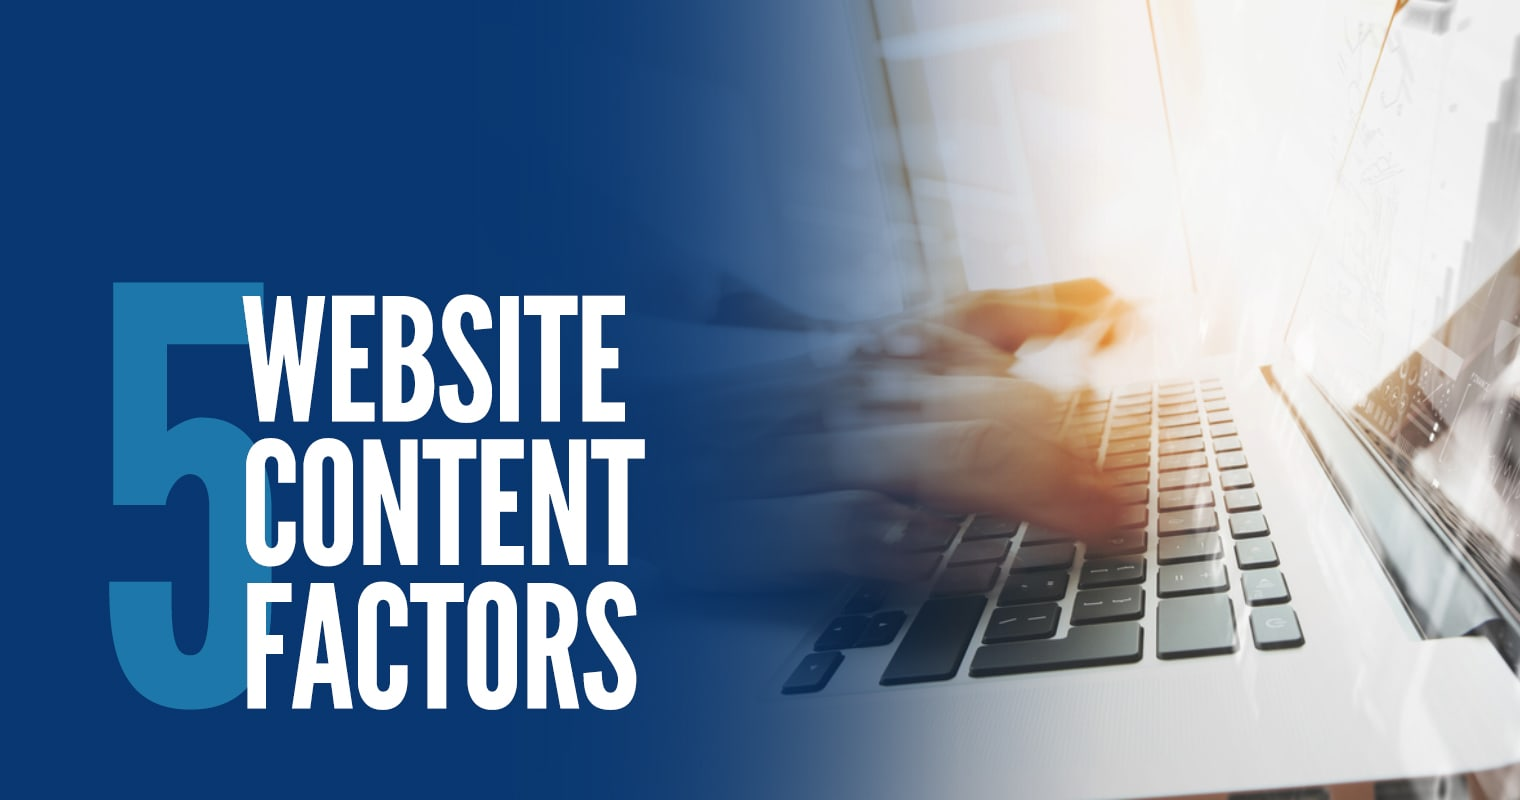 Website Content Factors